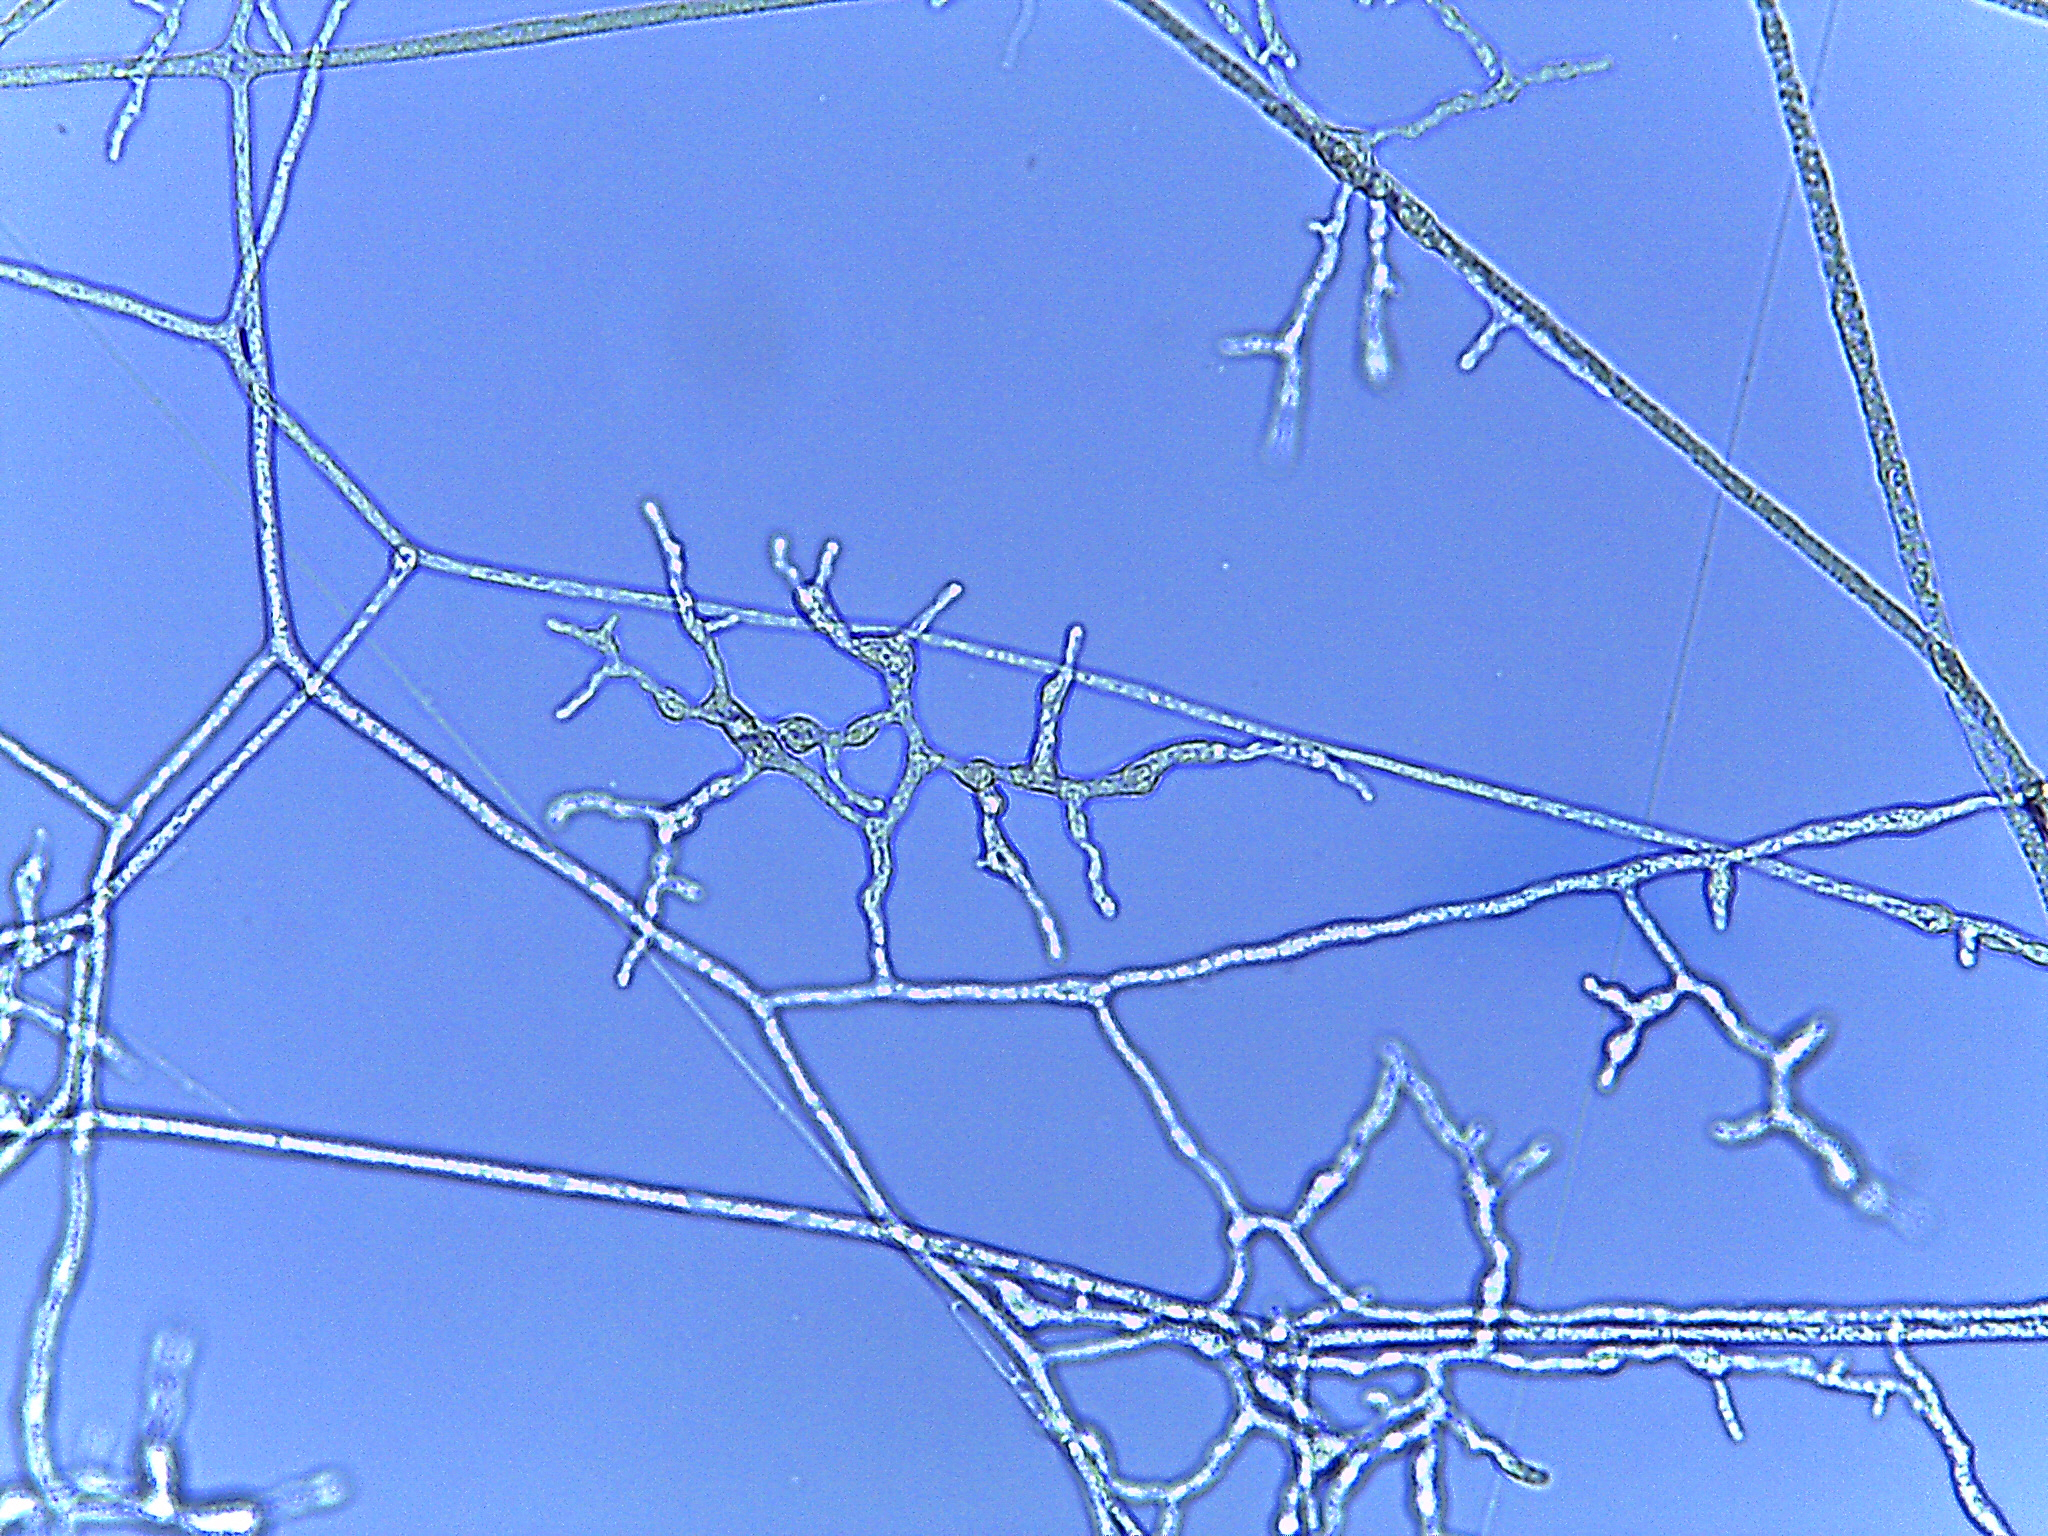 Figure 2. AD185 and related lineages of Mortierellaceae produce terminal dendritic structures on axillary branches of hyphae. The structures mature into branched, spherical chlamydospores. Image courtesy of Julian Liber.